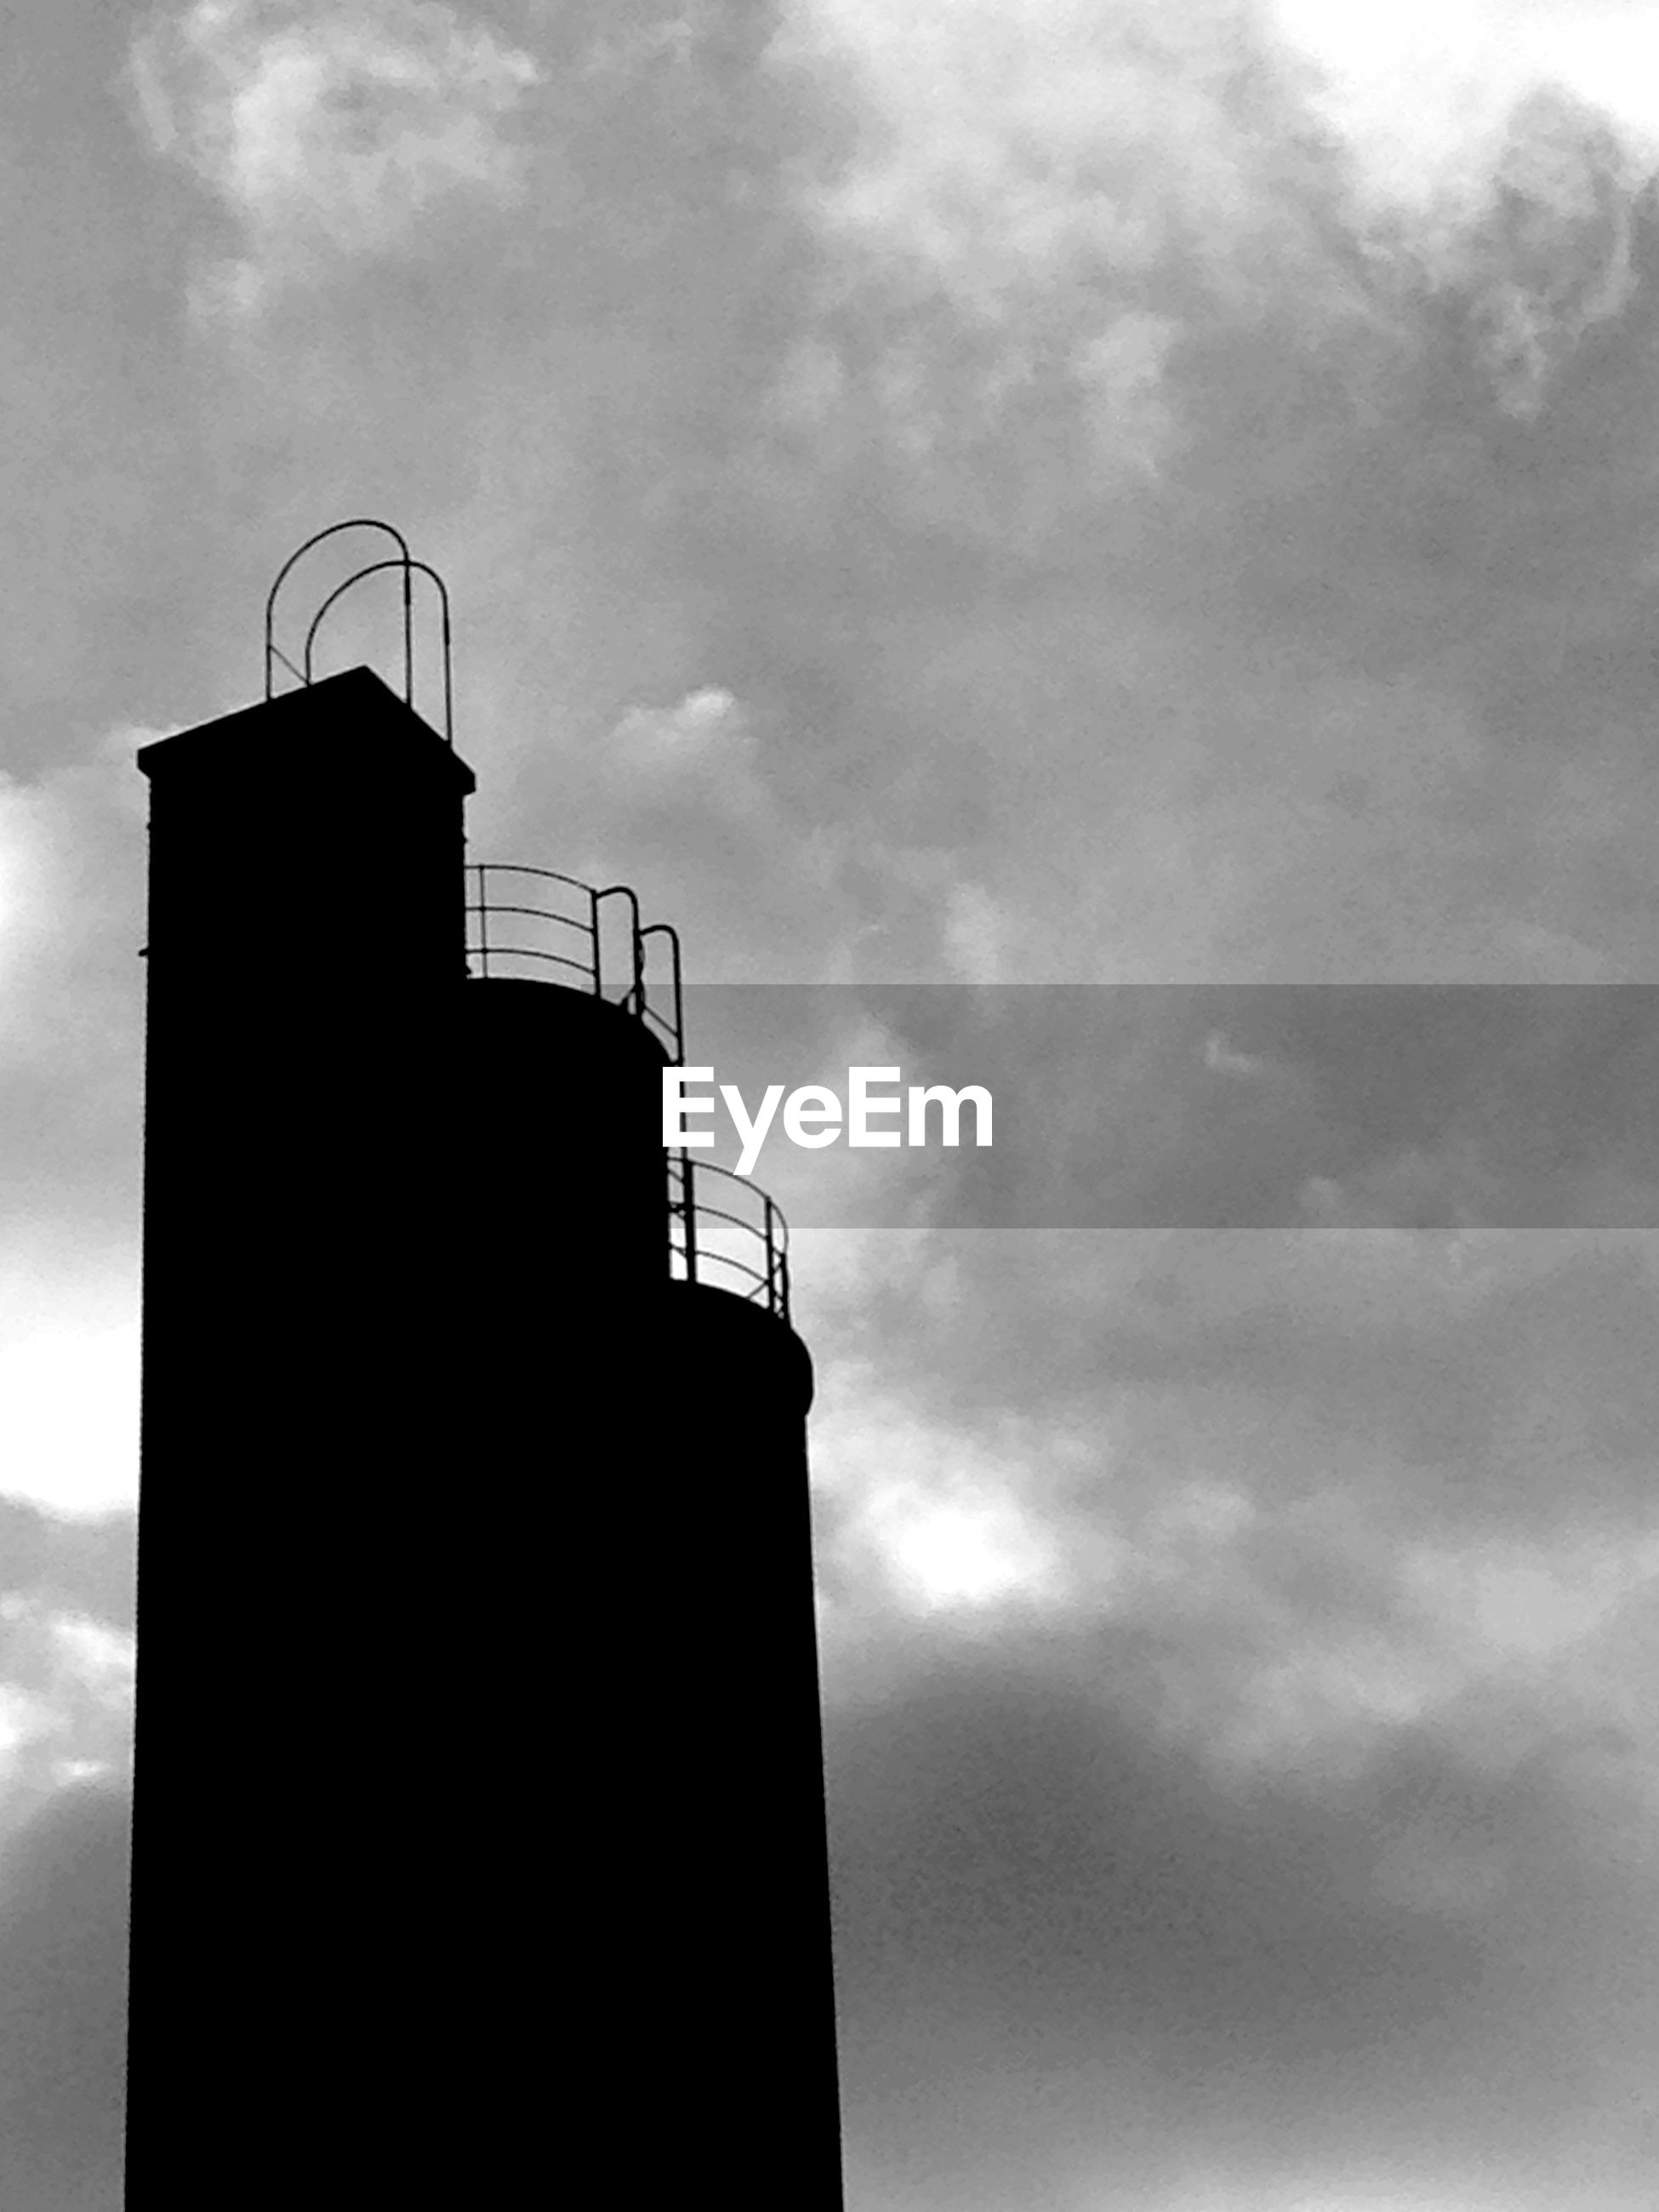 Low angle view of silhouette smoke stack against cloudy sky